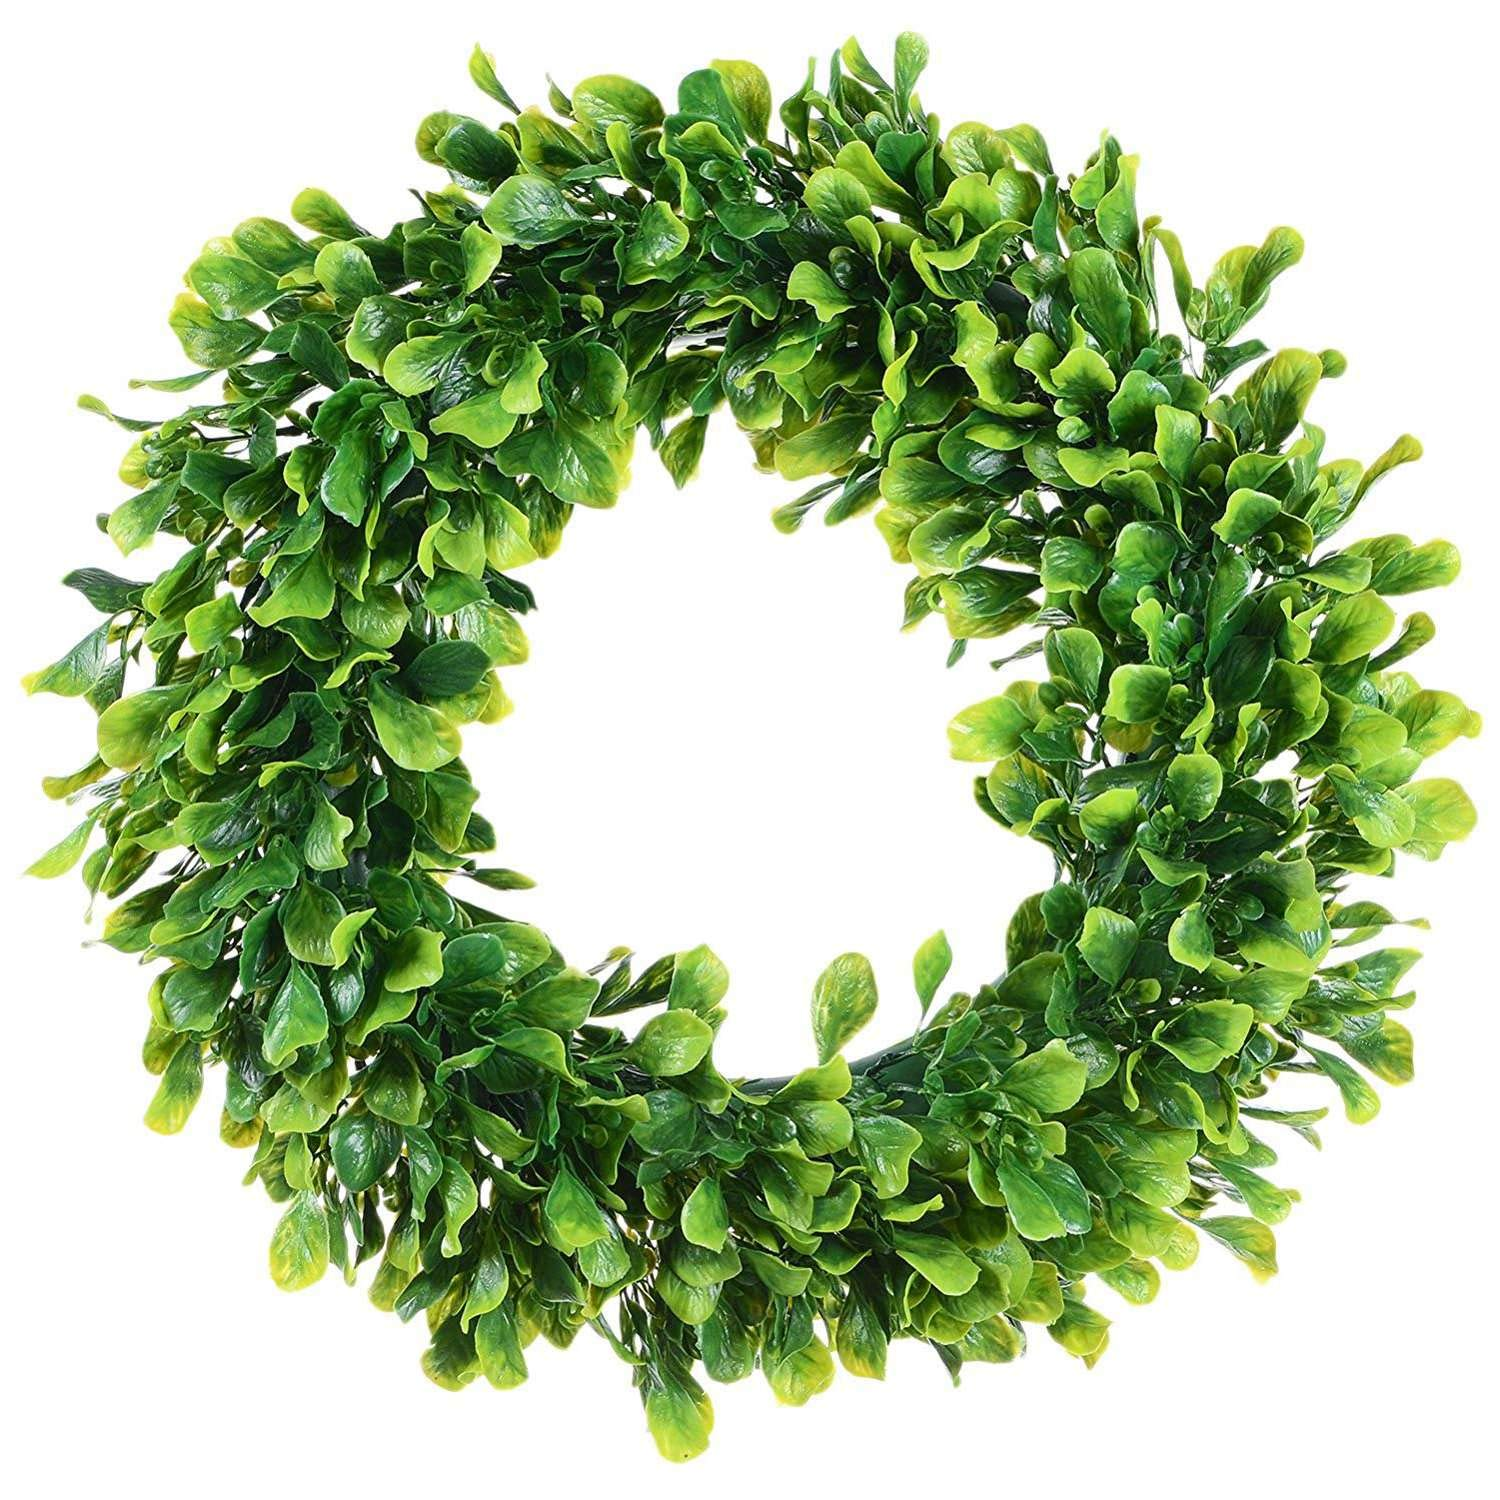 Wreaths /& Garlands Christmas Wreath Leaf Wreath Artificial Leaf Door Round Ball Plant Door Wall Flower Door C Artificial Green Leaves Wreath 15 Inch Boxwood Outdoor Wall Window Party Decor